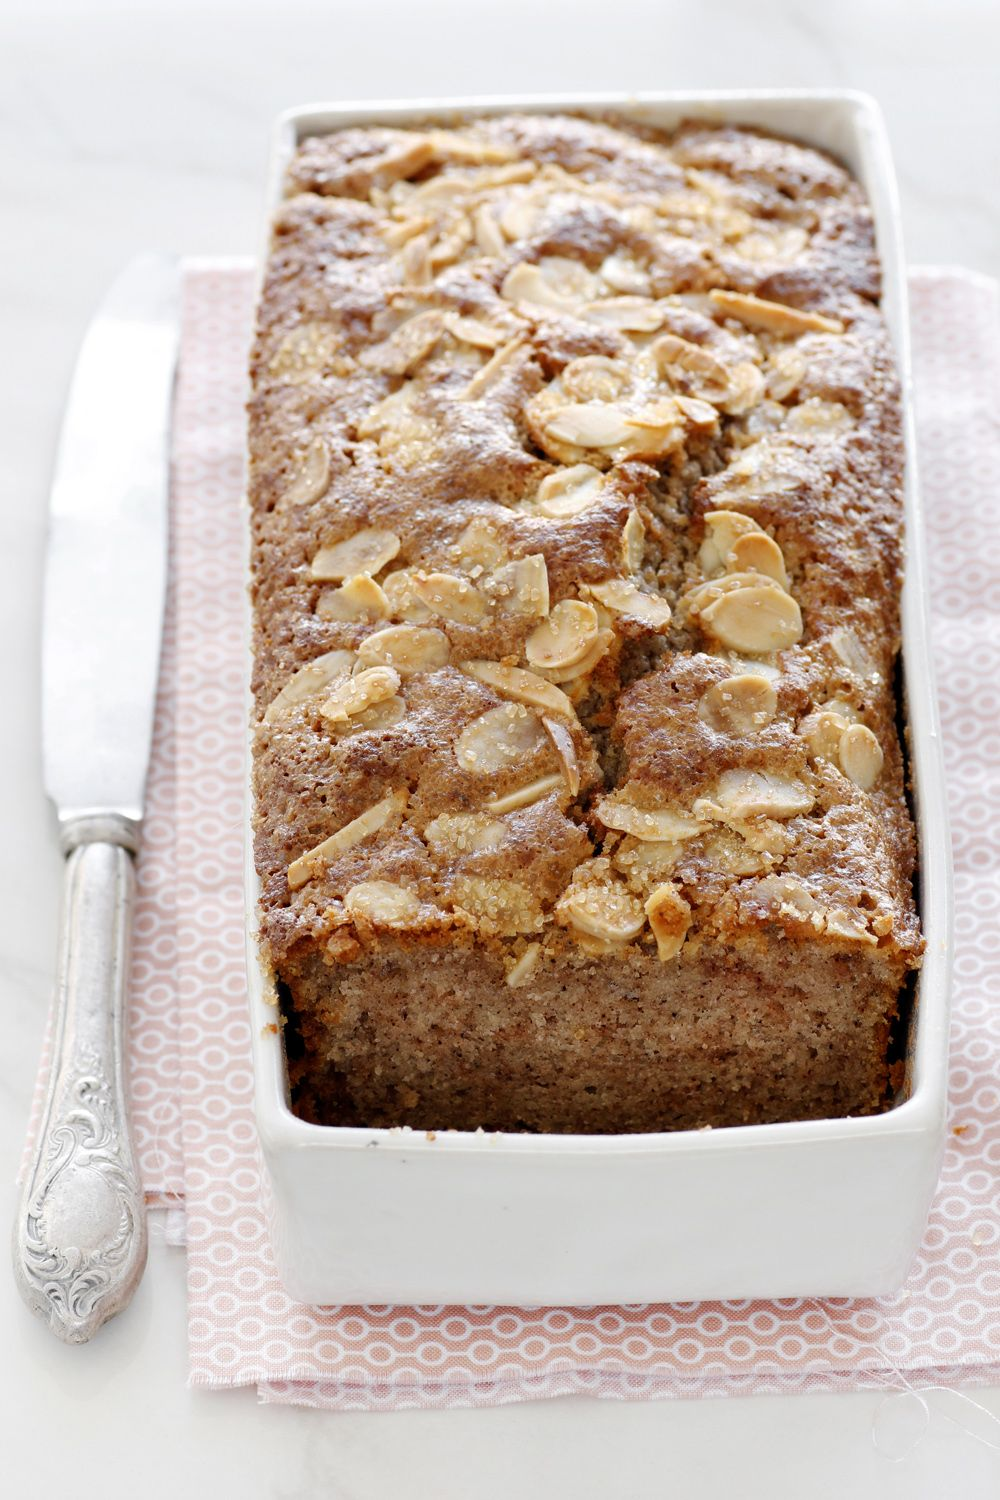 Cinnamon Walnut Cake with Honey